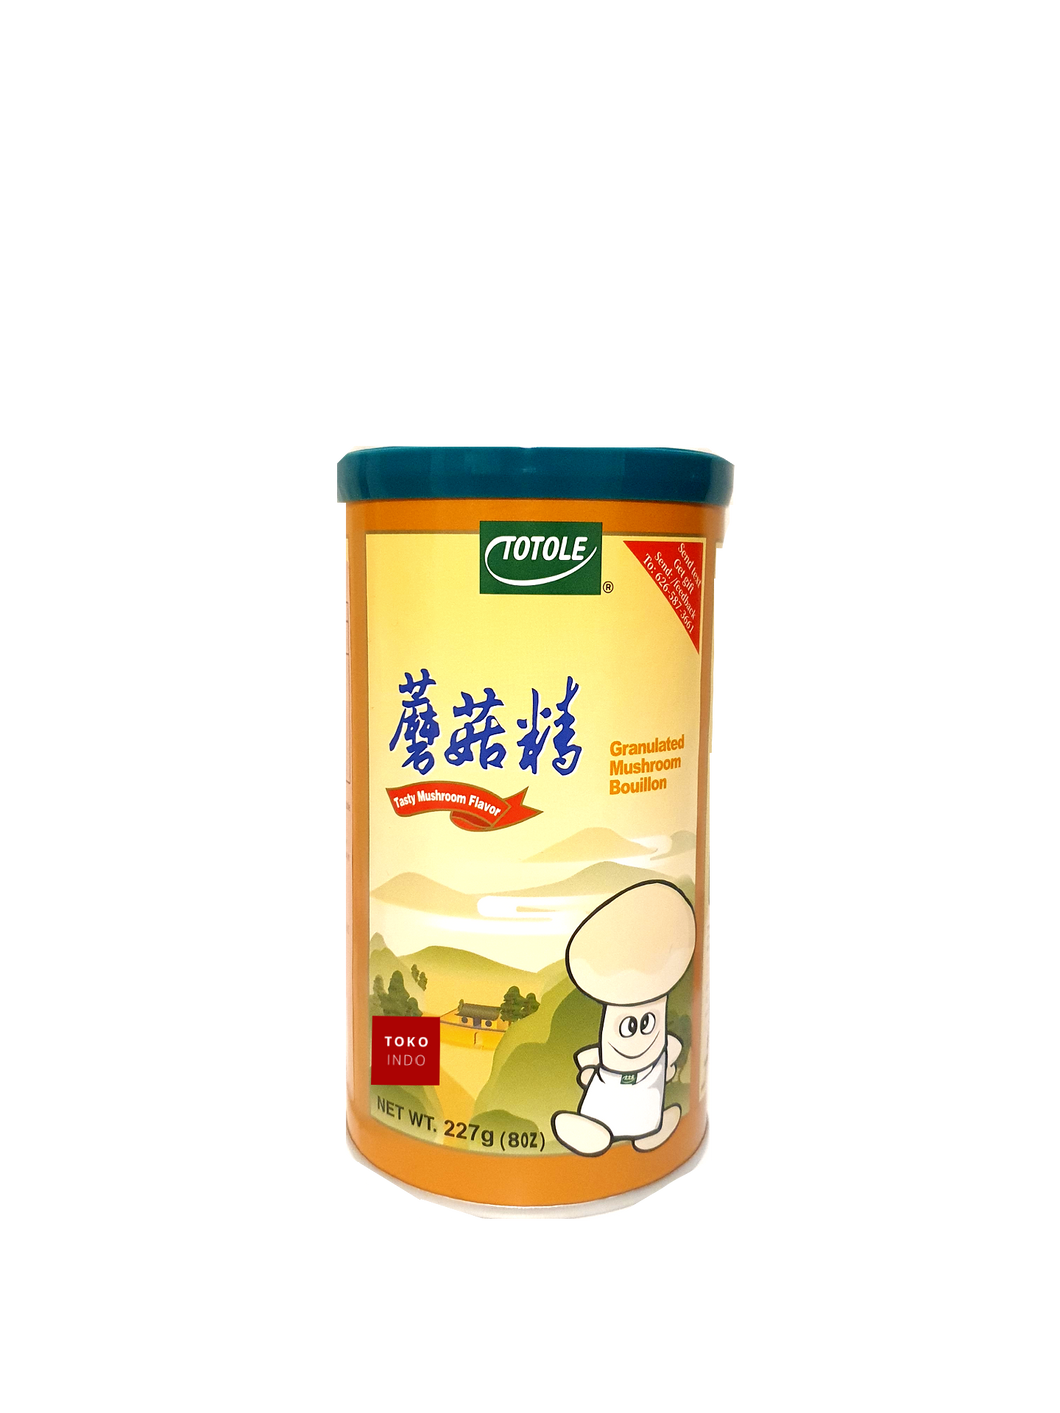 Totole Granulated Mushroom Bouillon - Toko Indo NZ